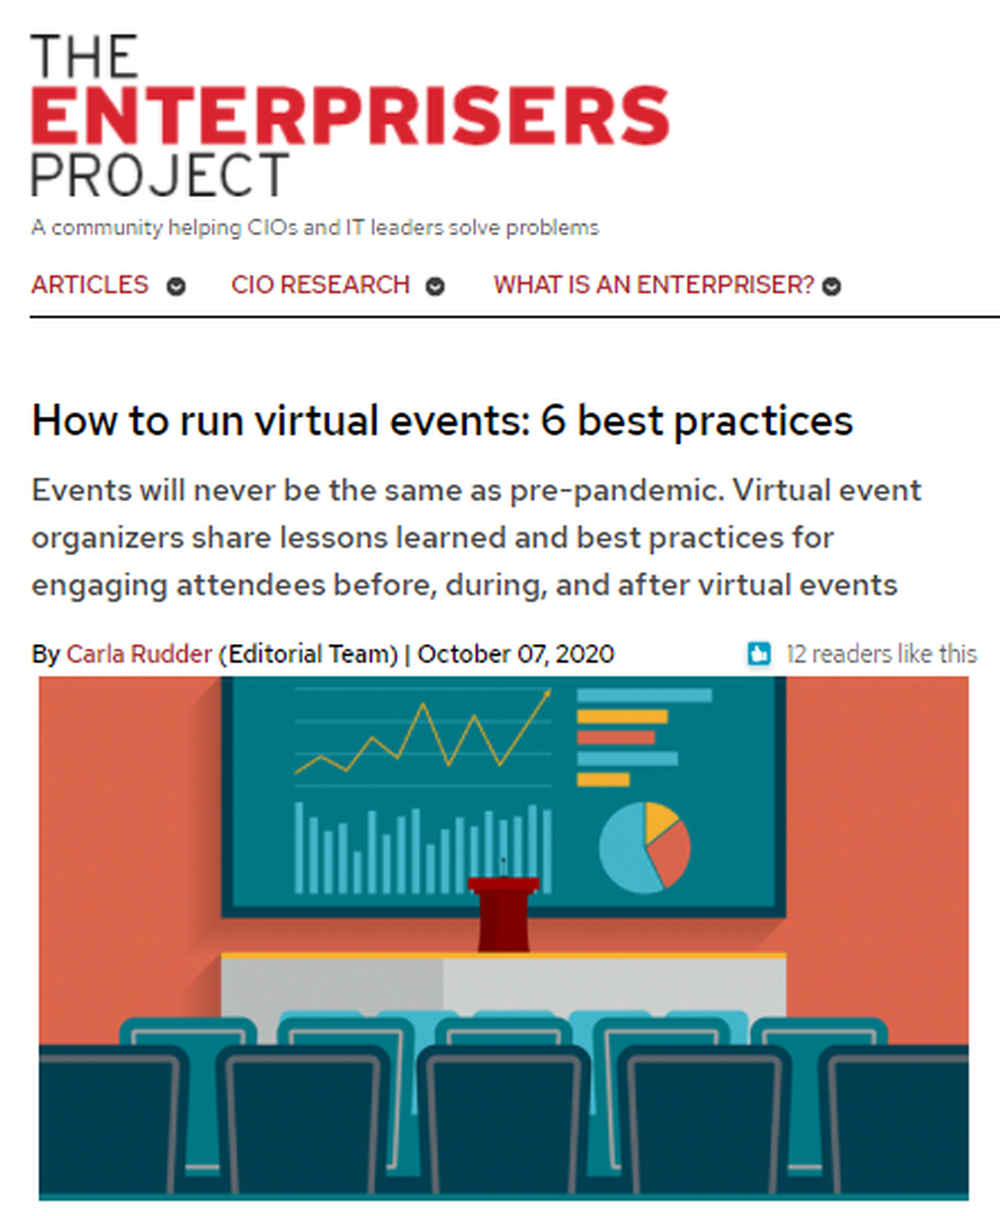 How-to-run-virtual-events-6-best-practices-The-Enterprisers-Project.png